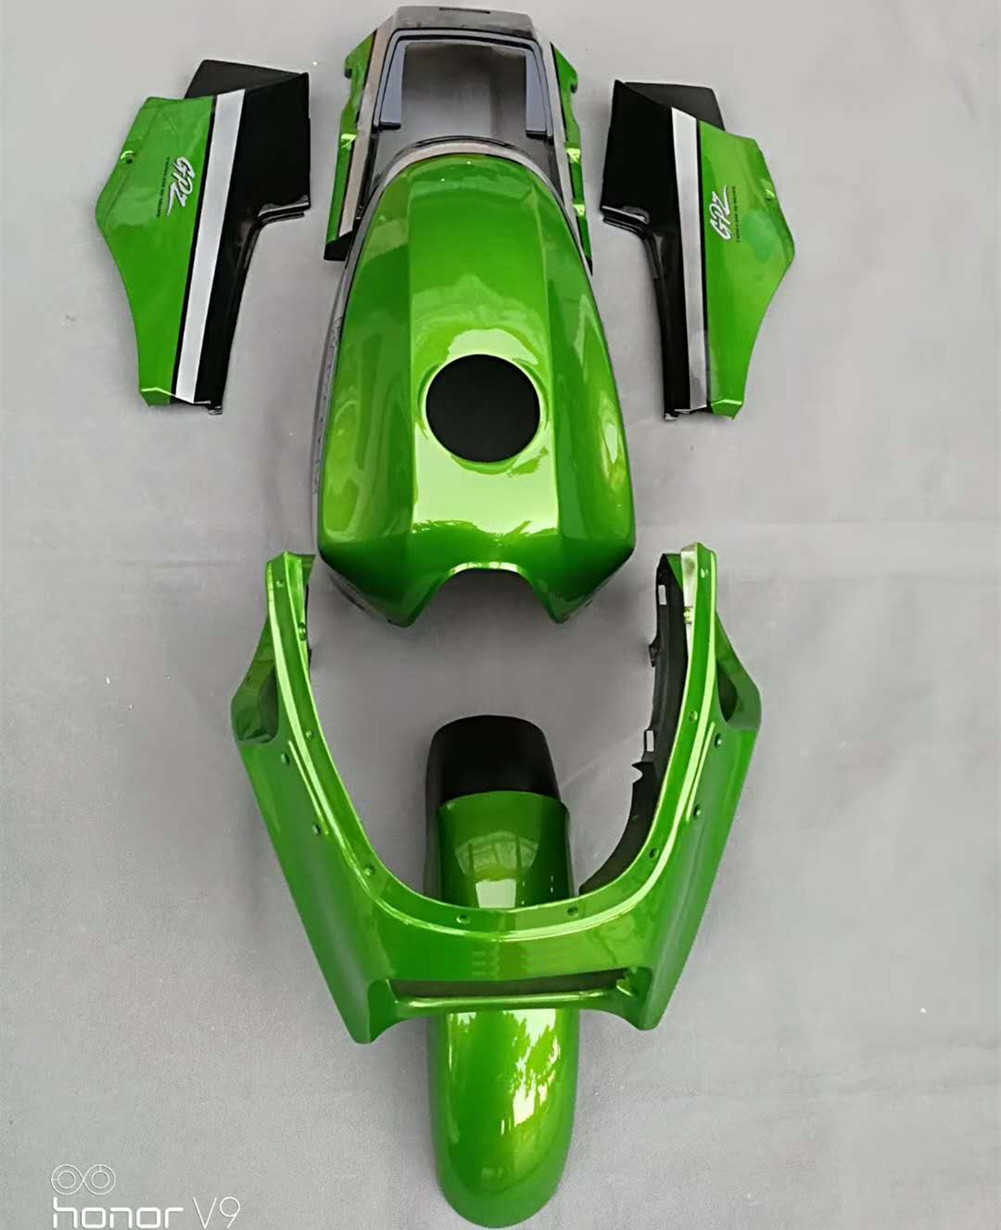 Green Fairings Bodywork Cowling Frame Cover Side Panel Mudguard Fender w/ Tank Fairing for Kawasaki GPZ900R ZX900A Ninja 900